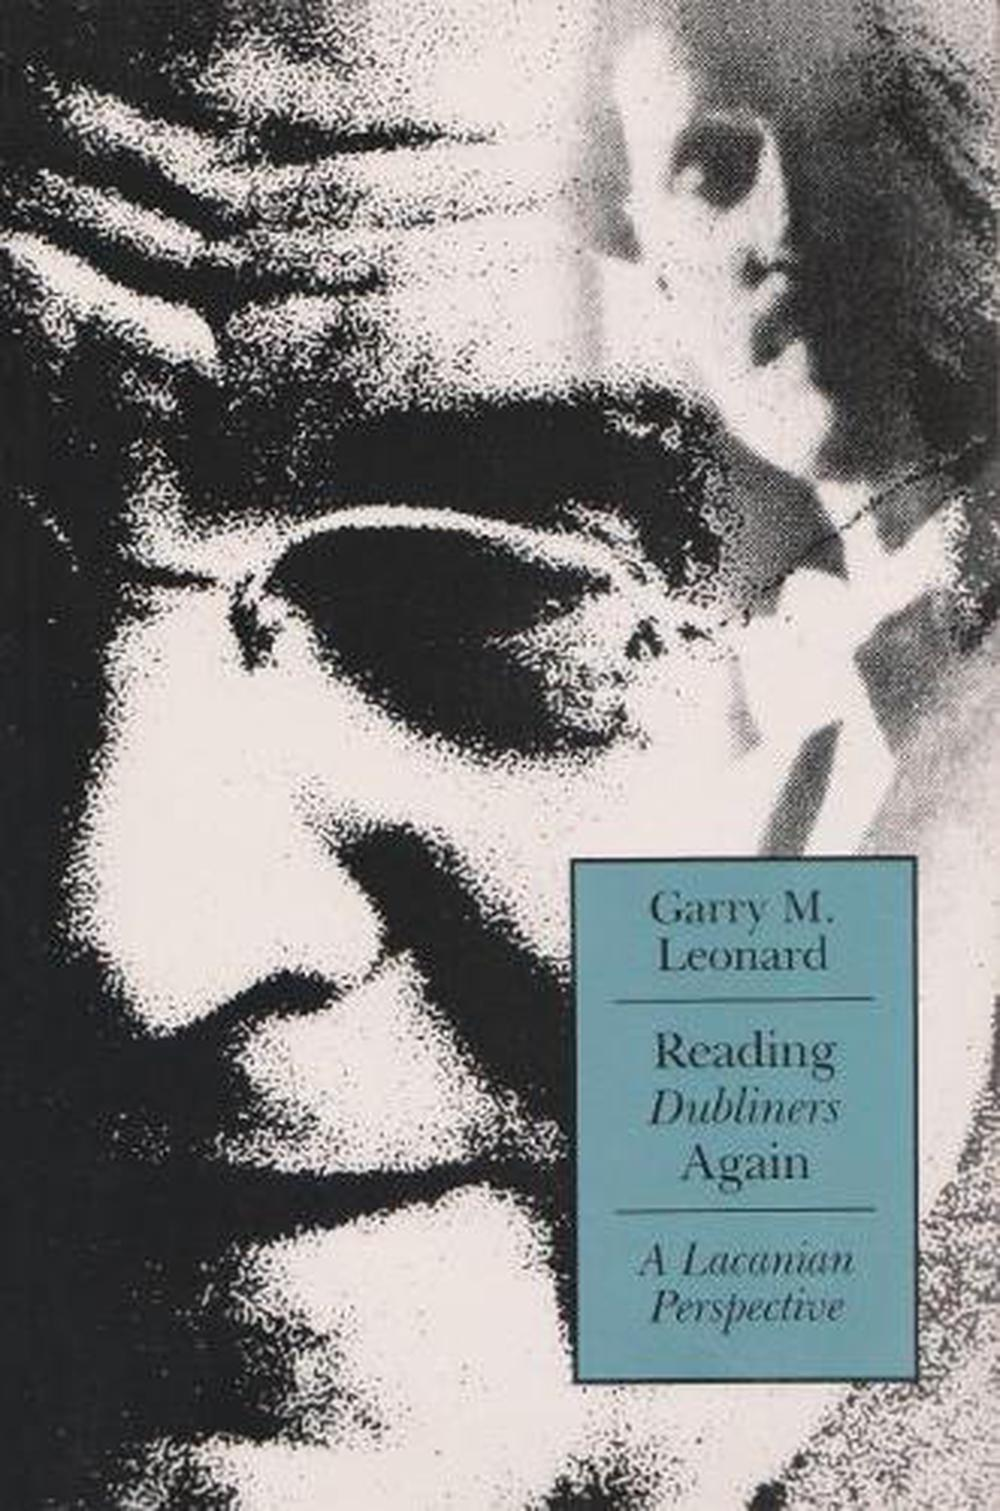 Reading Dubliners Again: A Lacanian Perspective by Garry M. Leonard (English) Pa